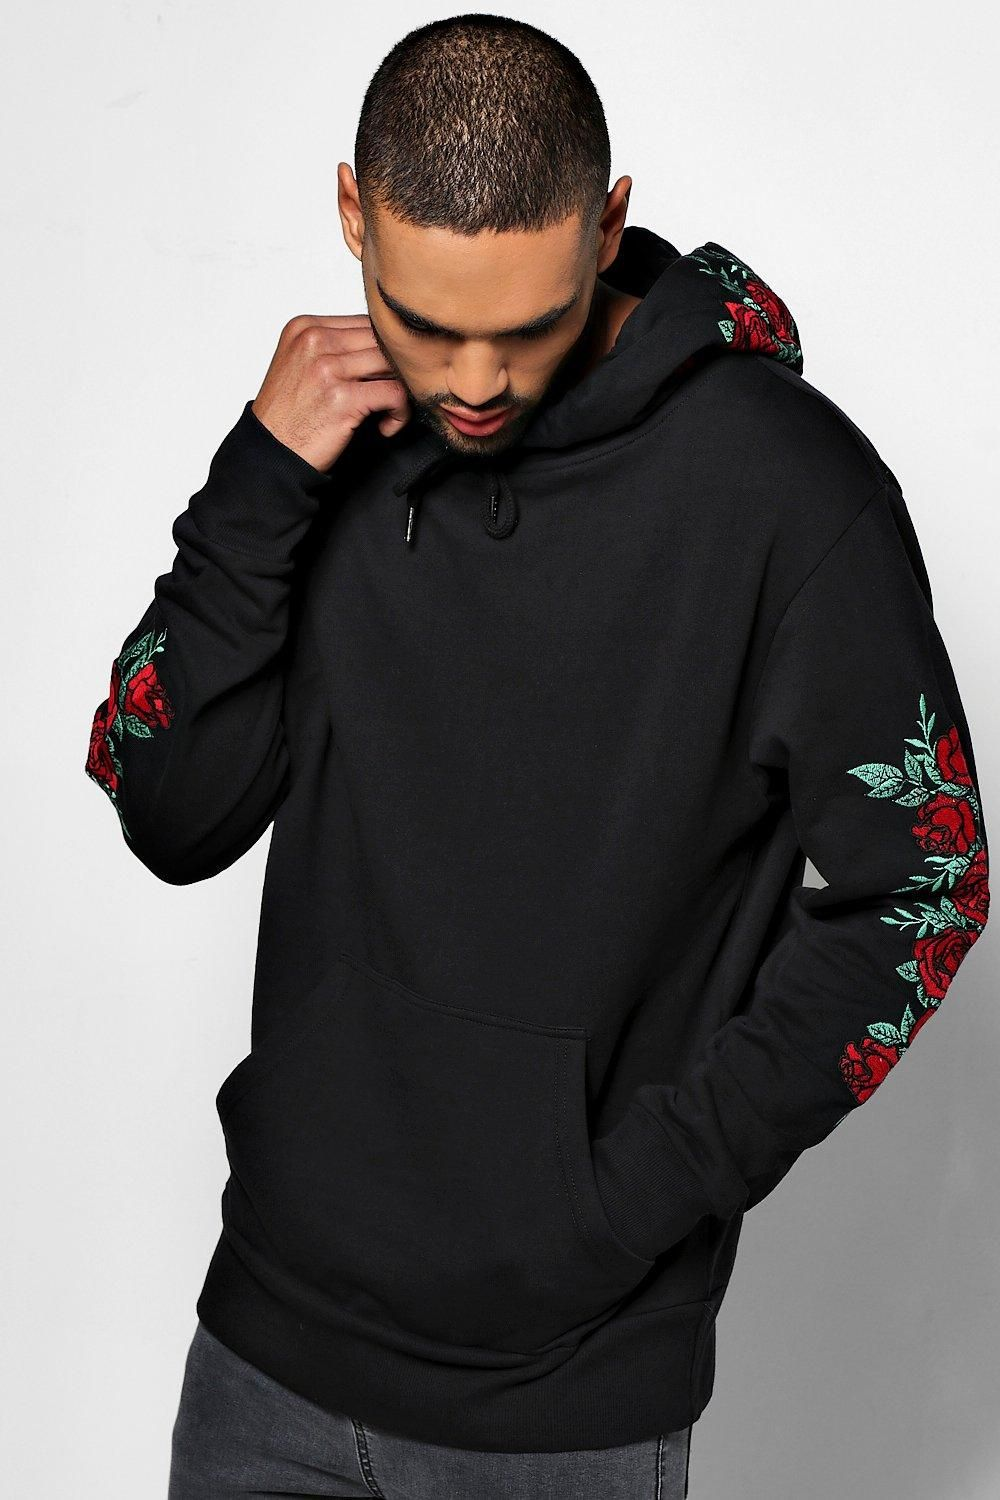 0cda0d01c5 Hoodies and sweats are every man's failsafe fashion fave Updated with  directional designs and talk-about textures, laid back gets luxe this  season.